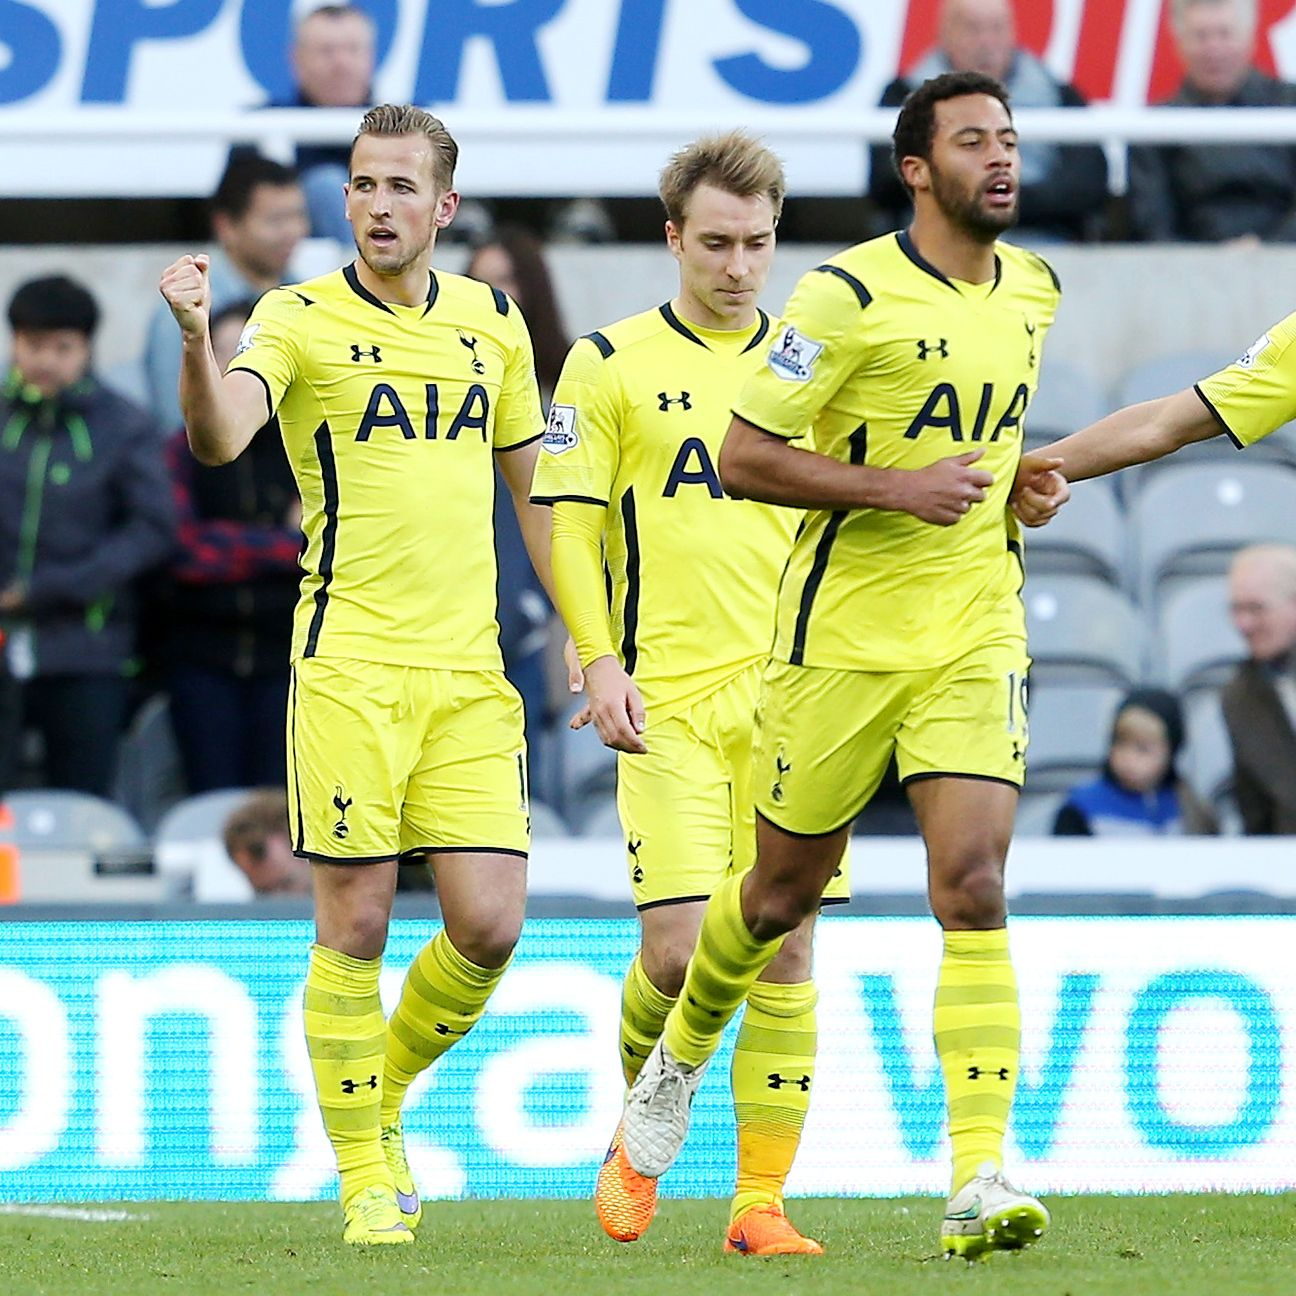 Tottenham snapped a two-match winless streak with a comprehensive performance at Newcastle.